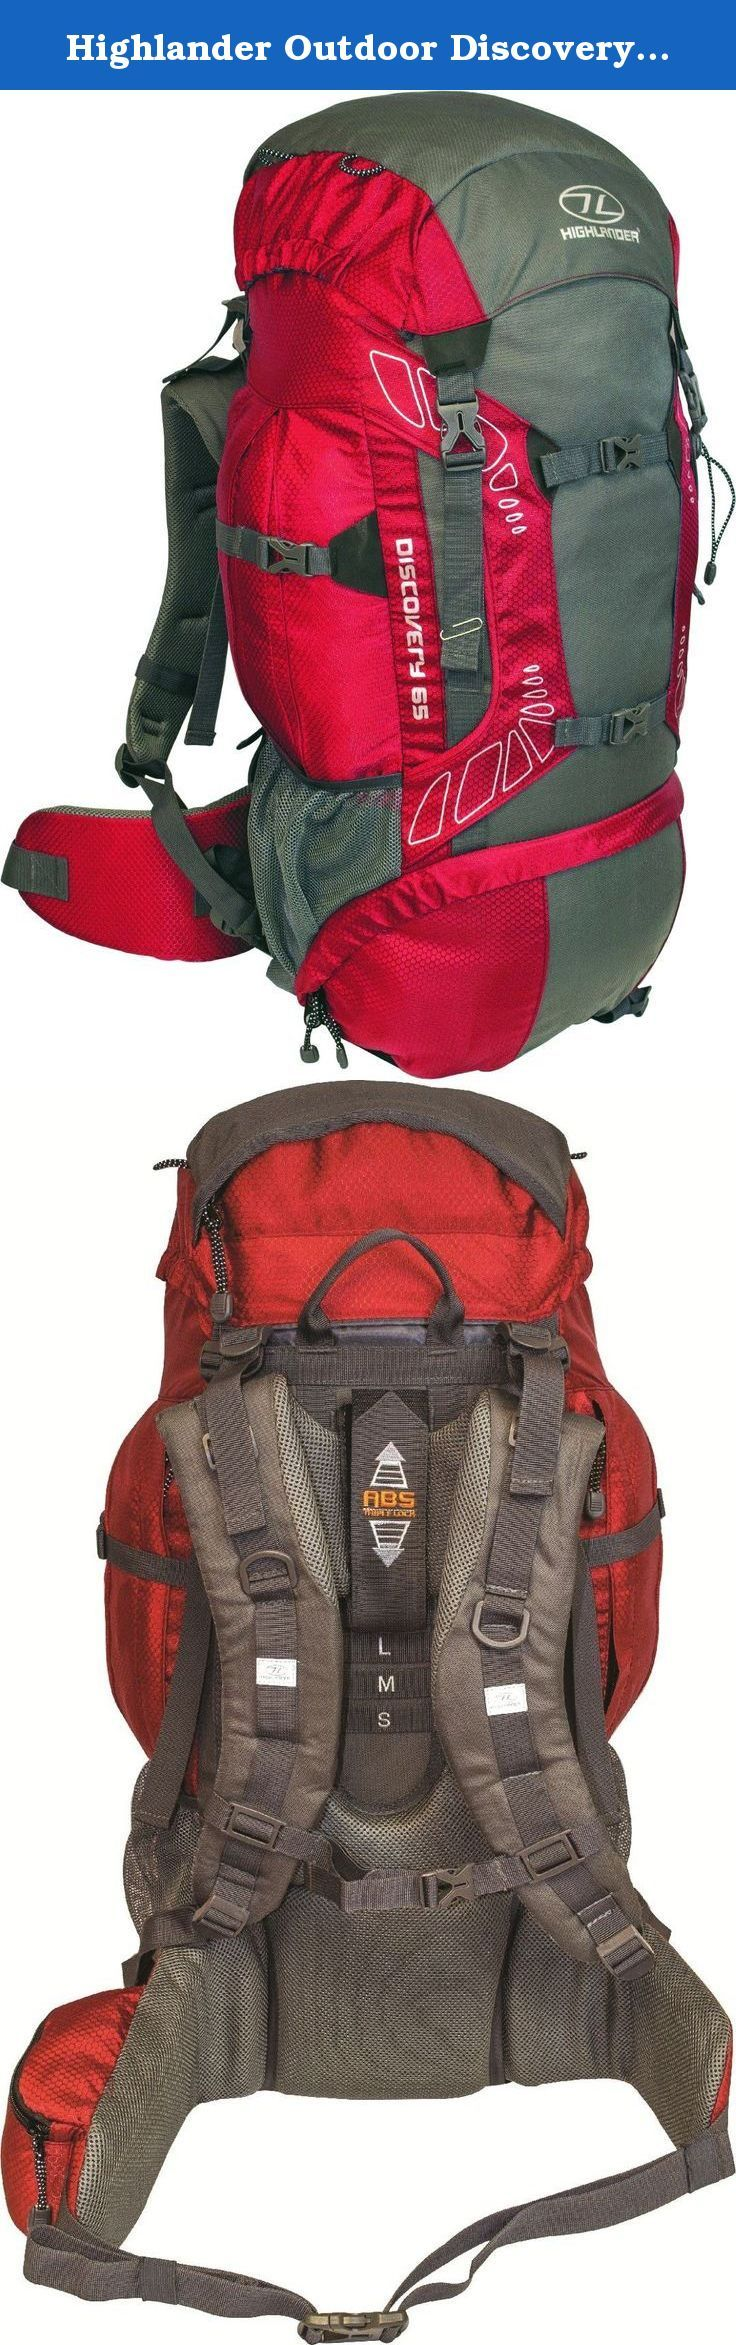 Highlander Outdoor Discovery 65-Liter Rucksack, Red. The Discovery 65L is a lightweight trekking rucksack with an adjustable back system, padded hip belt and shoulder straps. With a large main compartment with draw cord divider you can pack away gear and have ease of access. The bag also features multiple outer pockets, walking/ice axe loop and lid storage compartment. Ideal for hillwalking or climbing and has a highly visible integrated rain cover for extra protection. 240D Hex Ripstop...